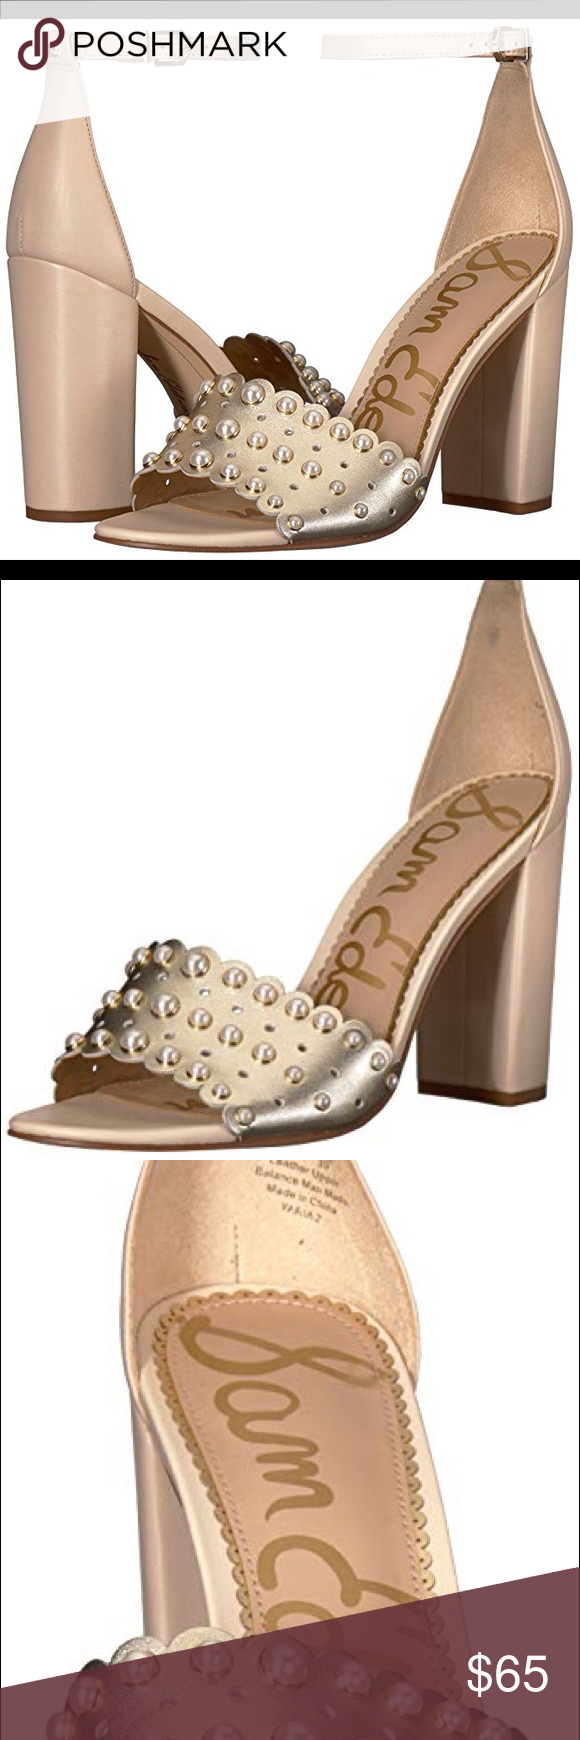 df8863703 Sam Edelman Yaria Studded Block Heel Sandal Add instant edginess to any  outfit with tall